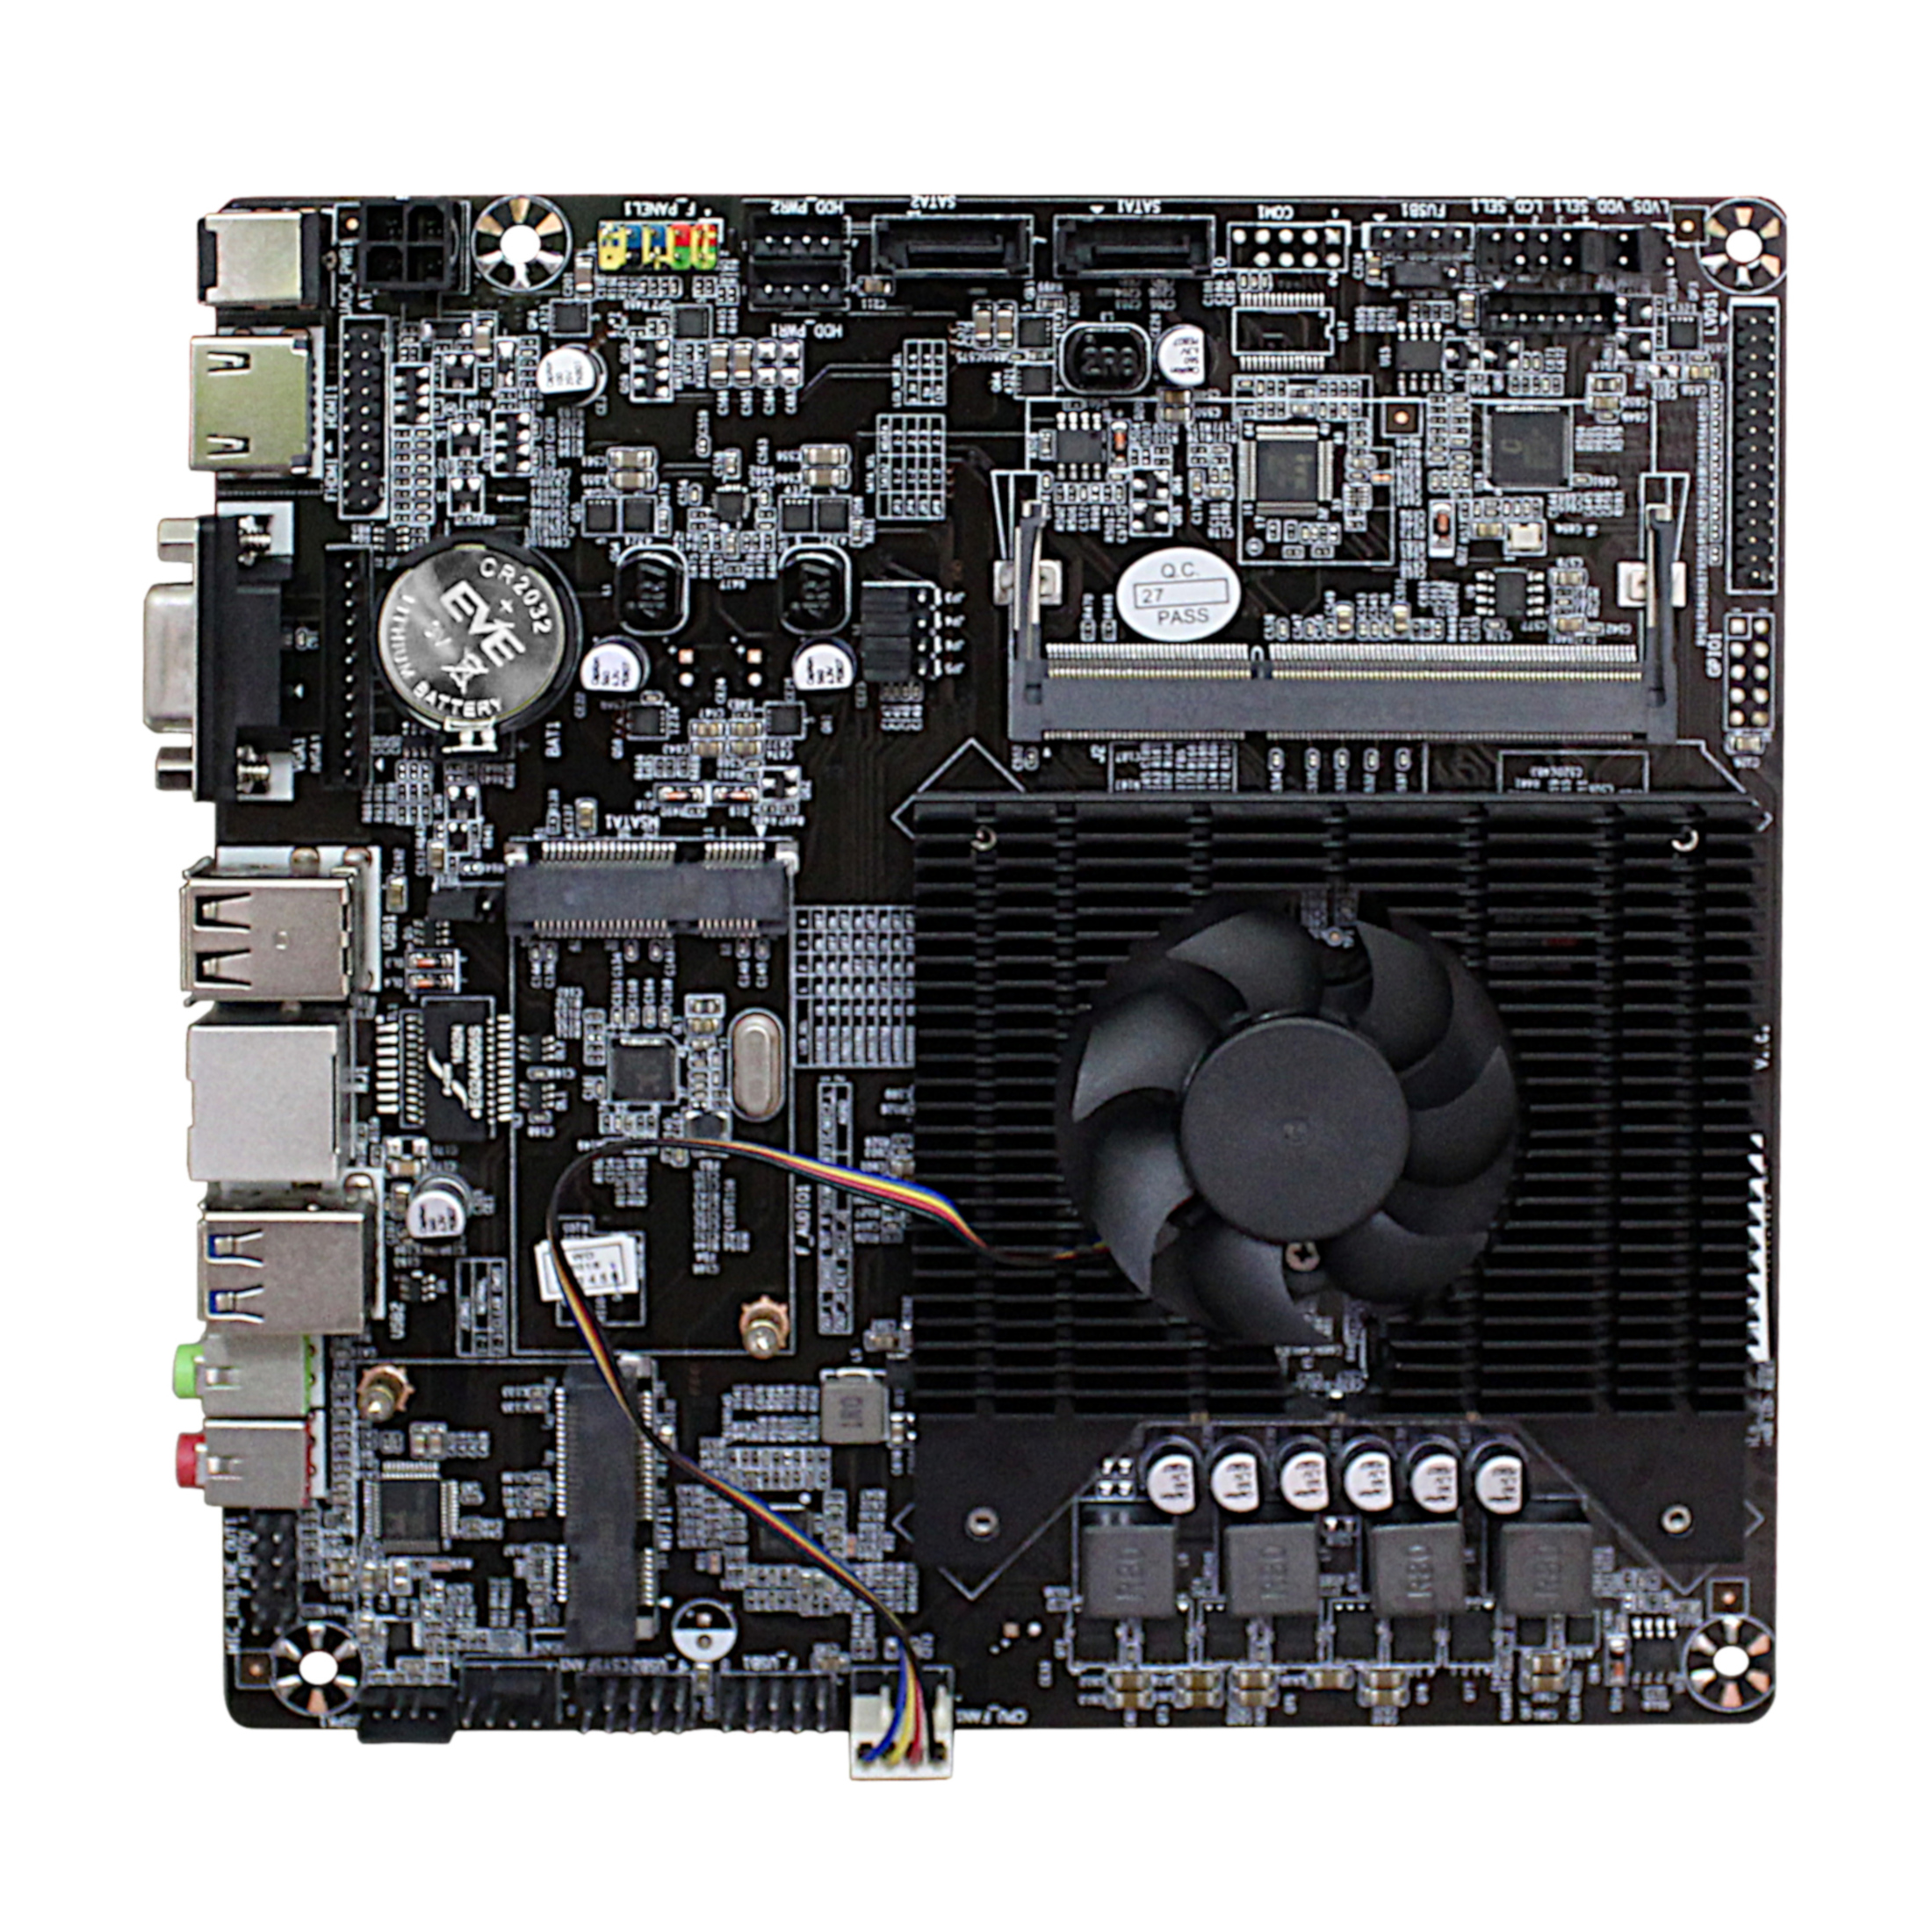 Ultra-thin Mini Itx Motherboard Built In  CPU A8 6410  R5 Video Graph Processing APU USB 3.0 VGA RJ45 HDMI USB MSata Use 12V DC